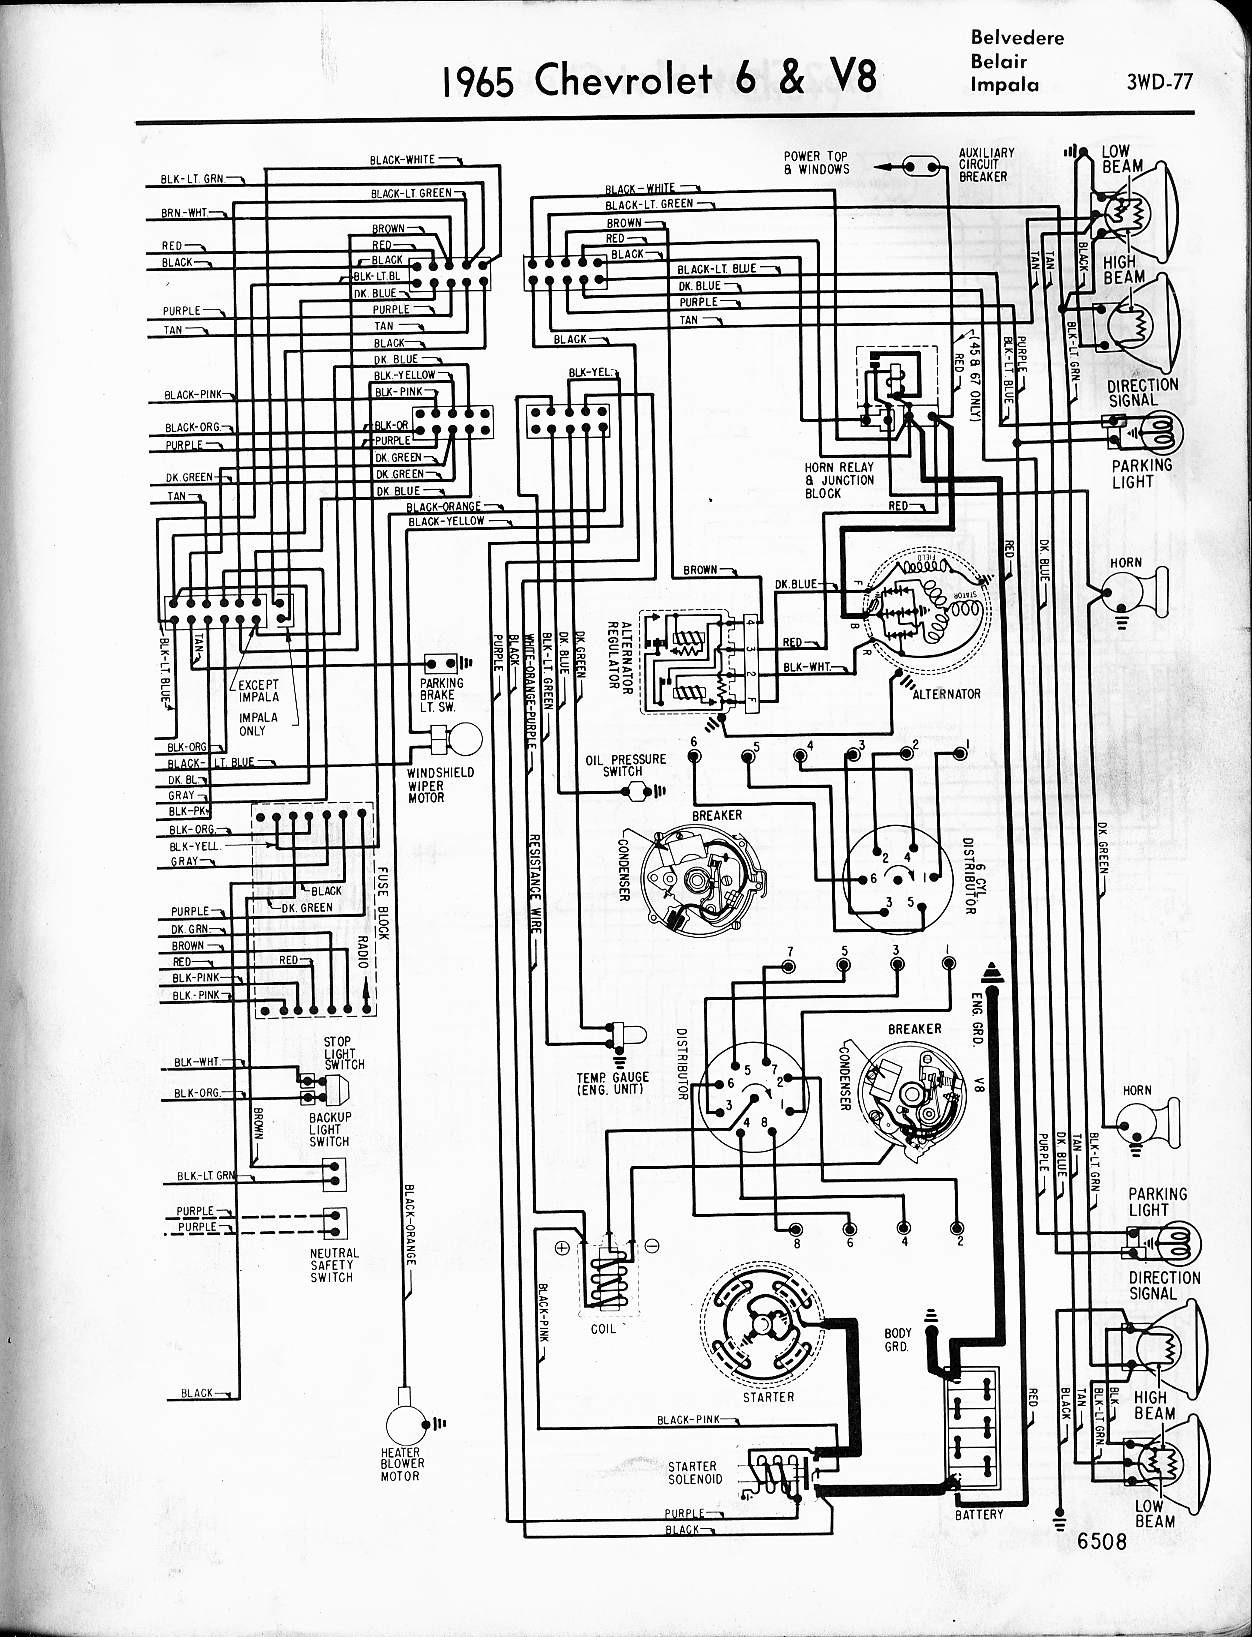 1968 chevy impala wiring diagram schematic example electrical 2007 chevy  4x4 wiring diagram 1963 chevy impala